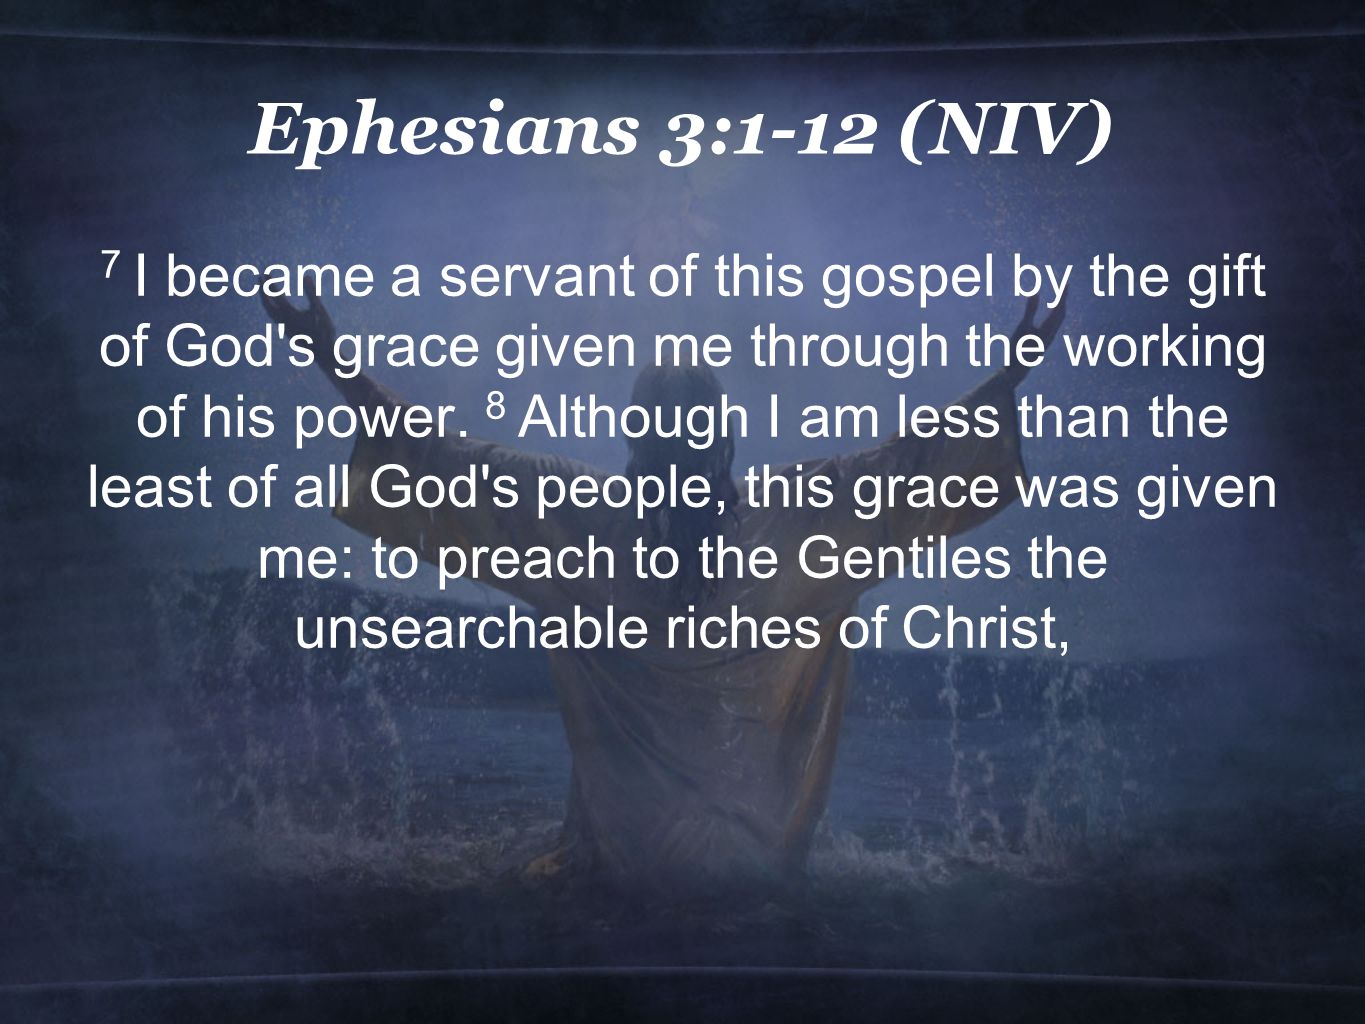 Ephesians 3:1-12 (NIV) 7 I became a servant of this gospel by the gift of God s grace given me through the working of his power.